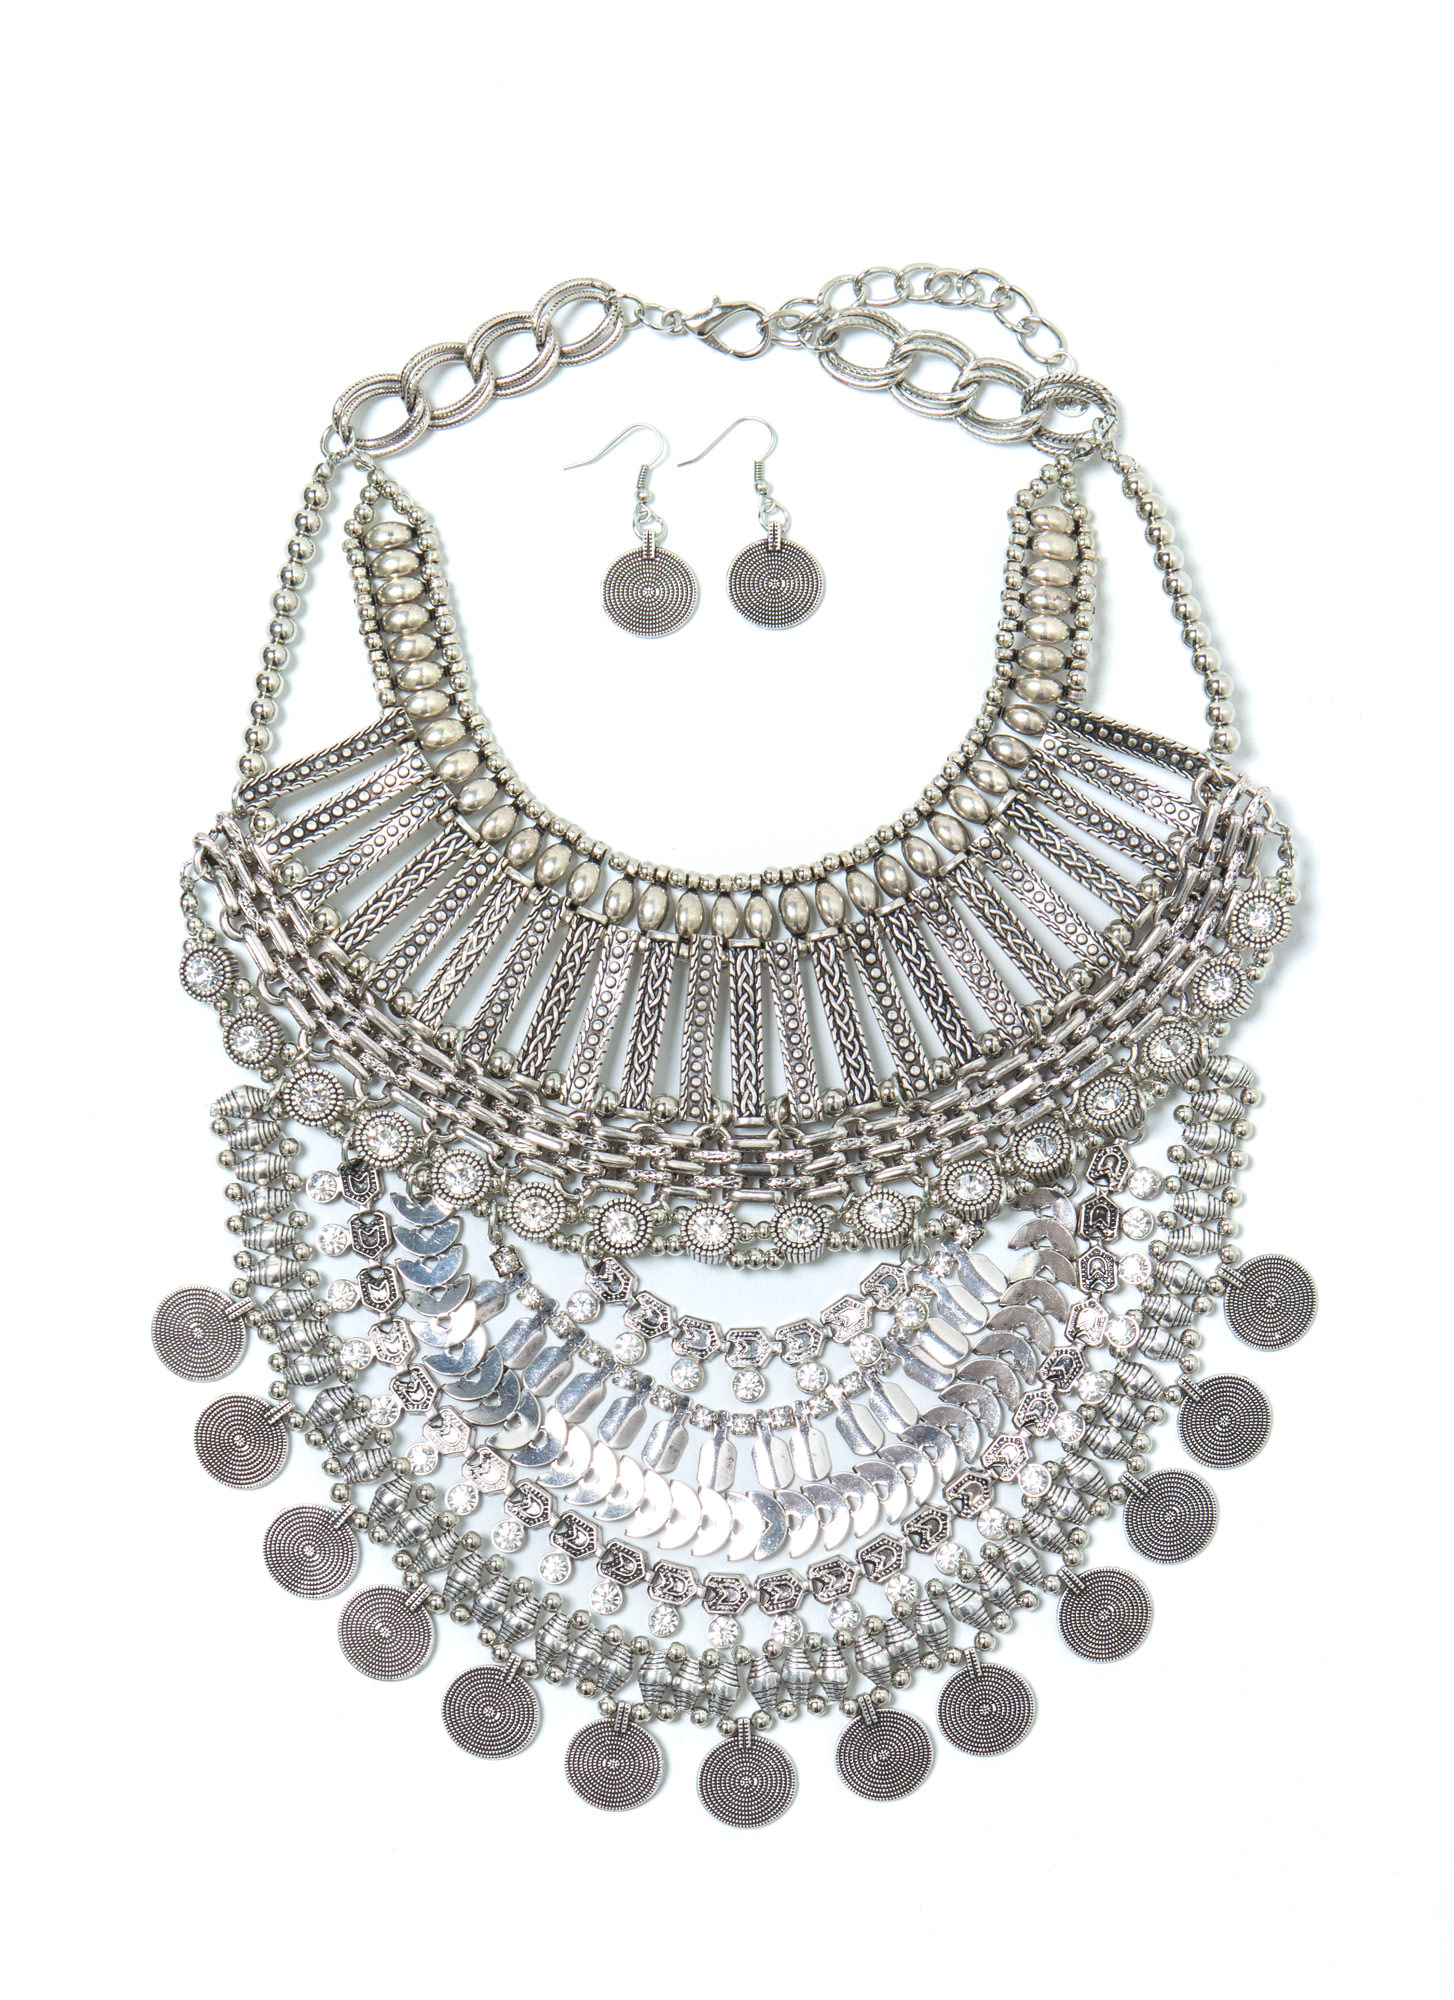 Oversized Tribal Beaded Bib Necklace Set DKSILVER